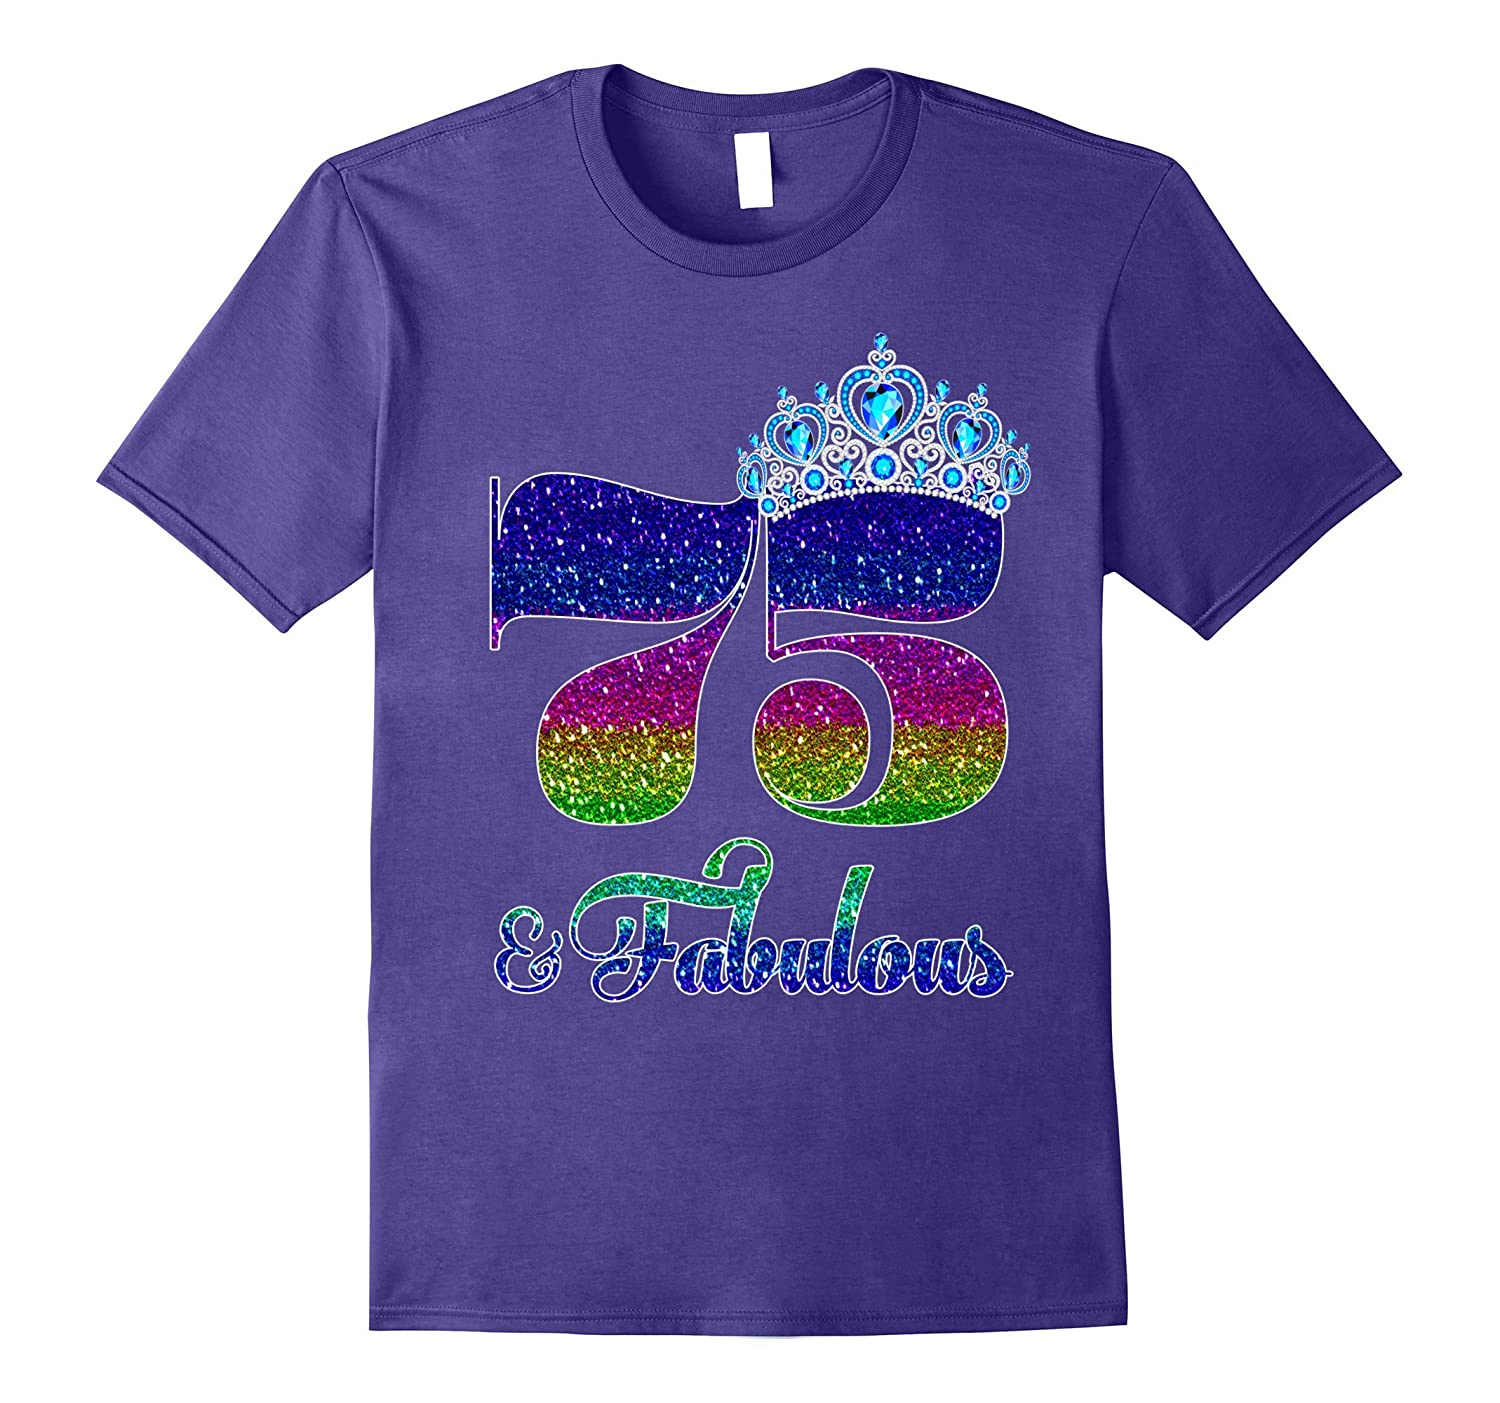 75 And Fabulous TShirt Queen 75th Birthday Shirt-PL